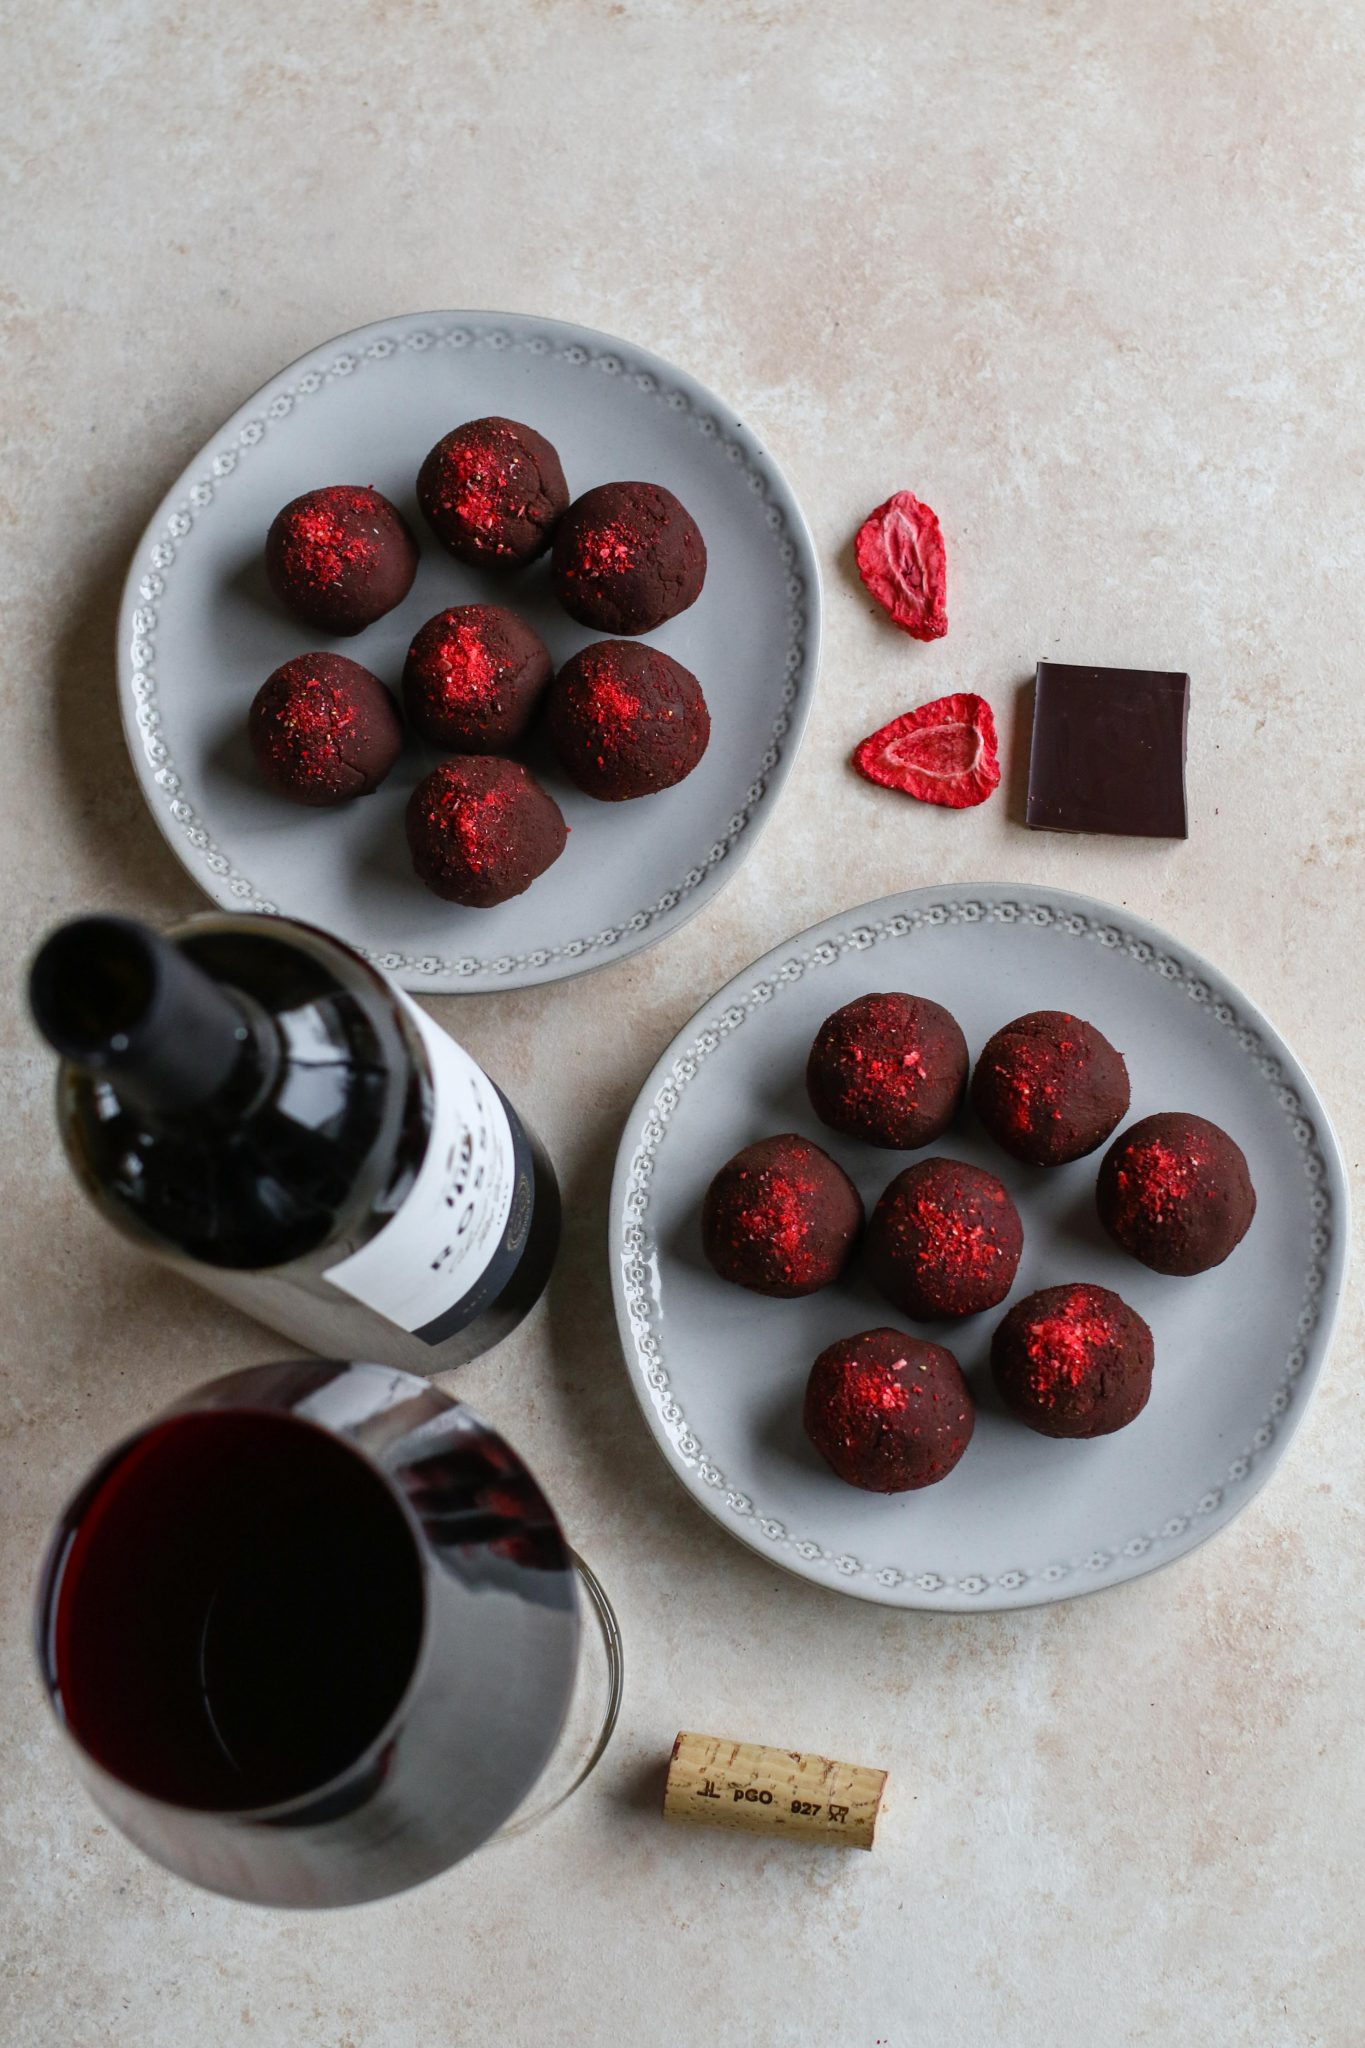 3-Ingredient Chocolate Strawberry Truffles by Flora & Vino